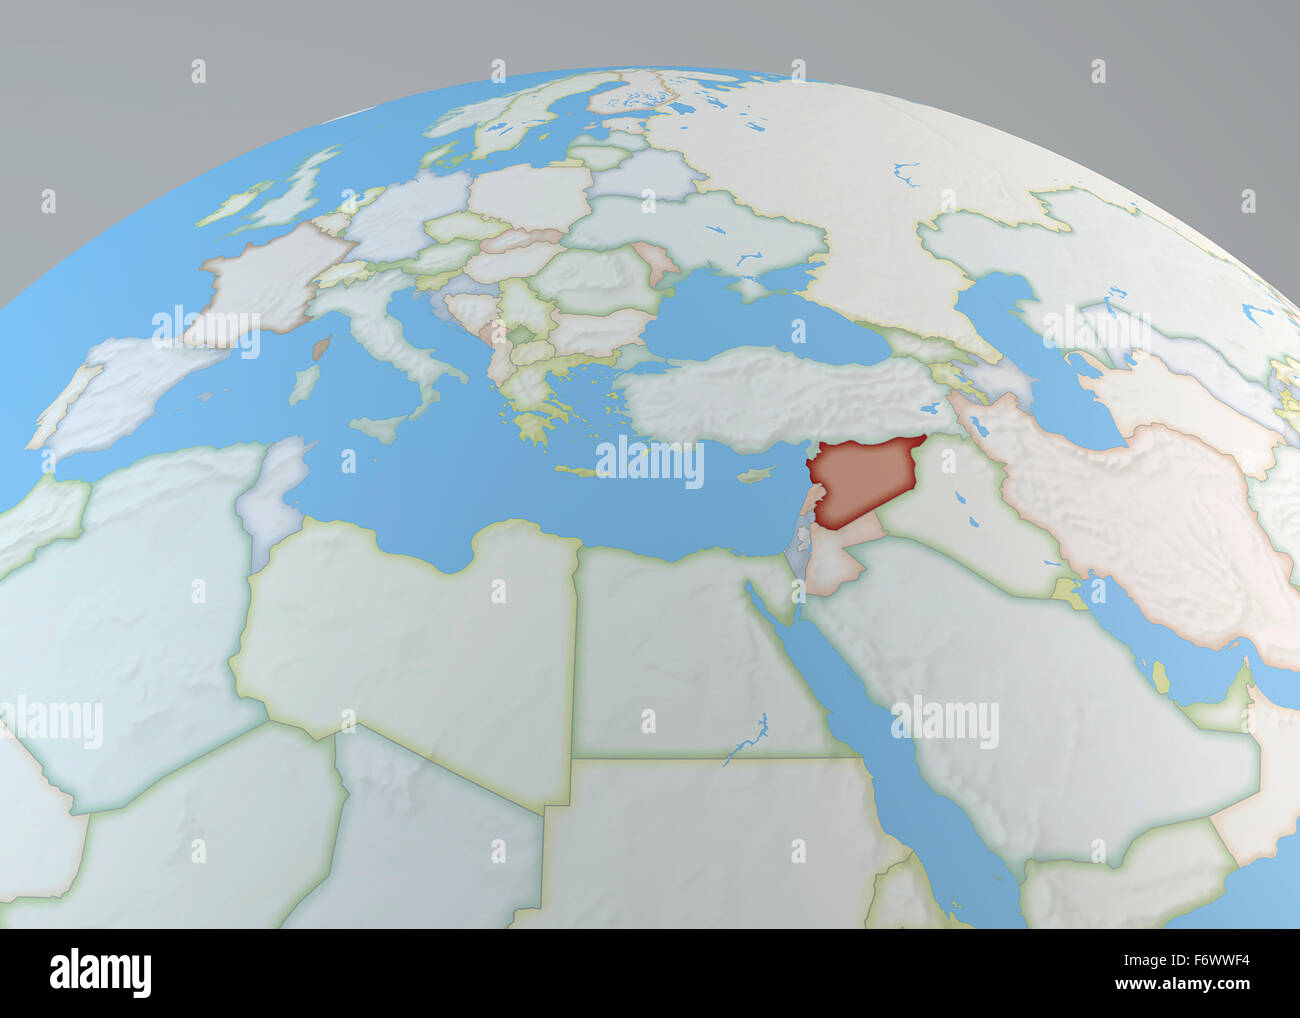 World map of middle east with syria highlighted north africa and world map of middle east with syria highlighted north africa and europe gumiabroncs Gallery